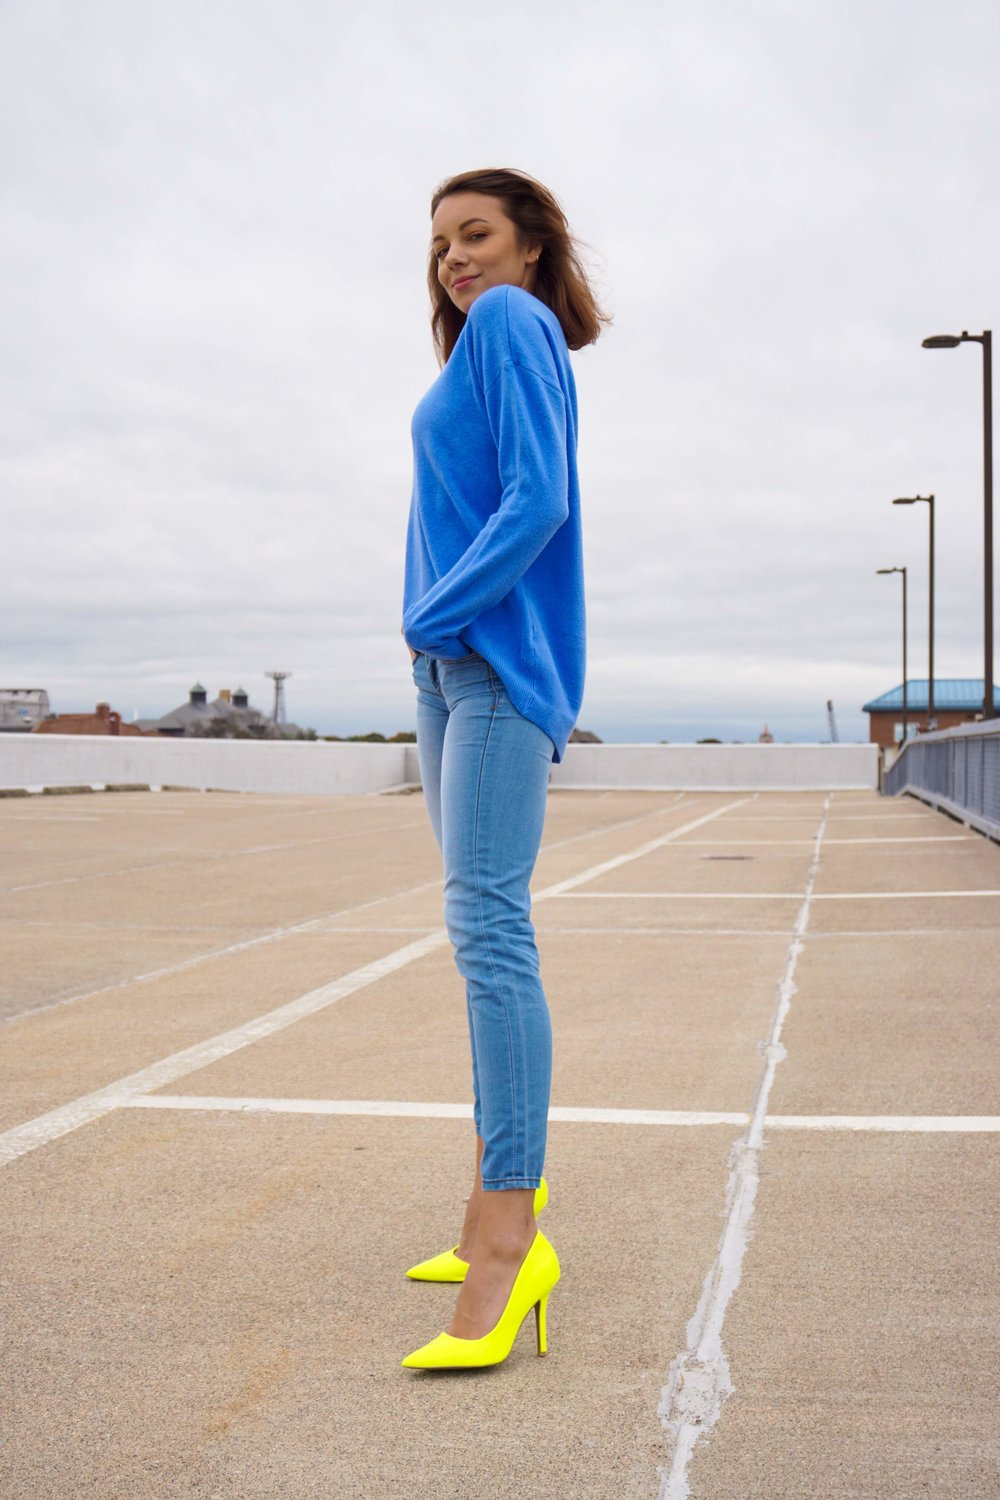 A girl posing on a top floor of a garage, wearinng a blue sweater, light denim pants, and neon heels.